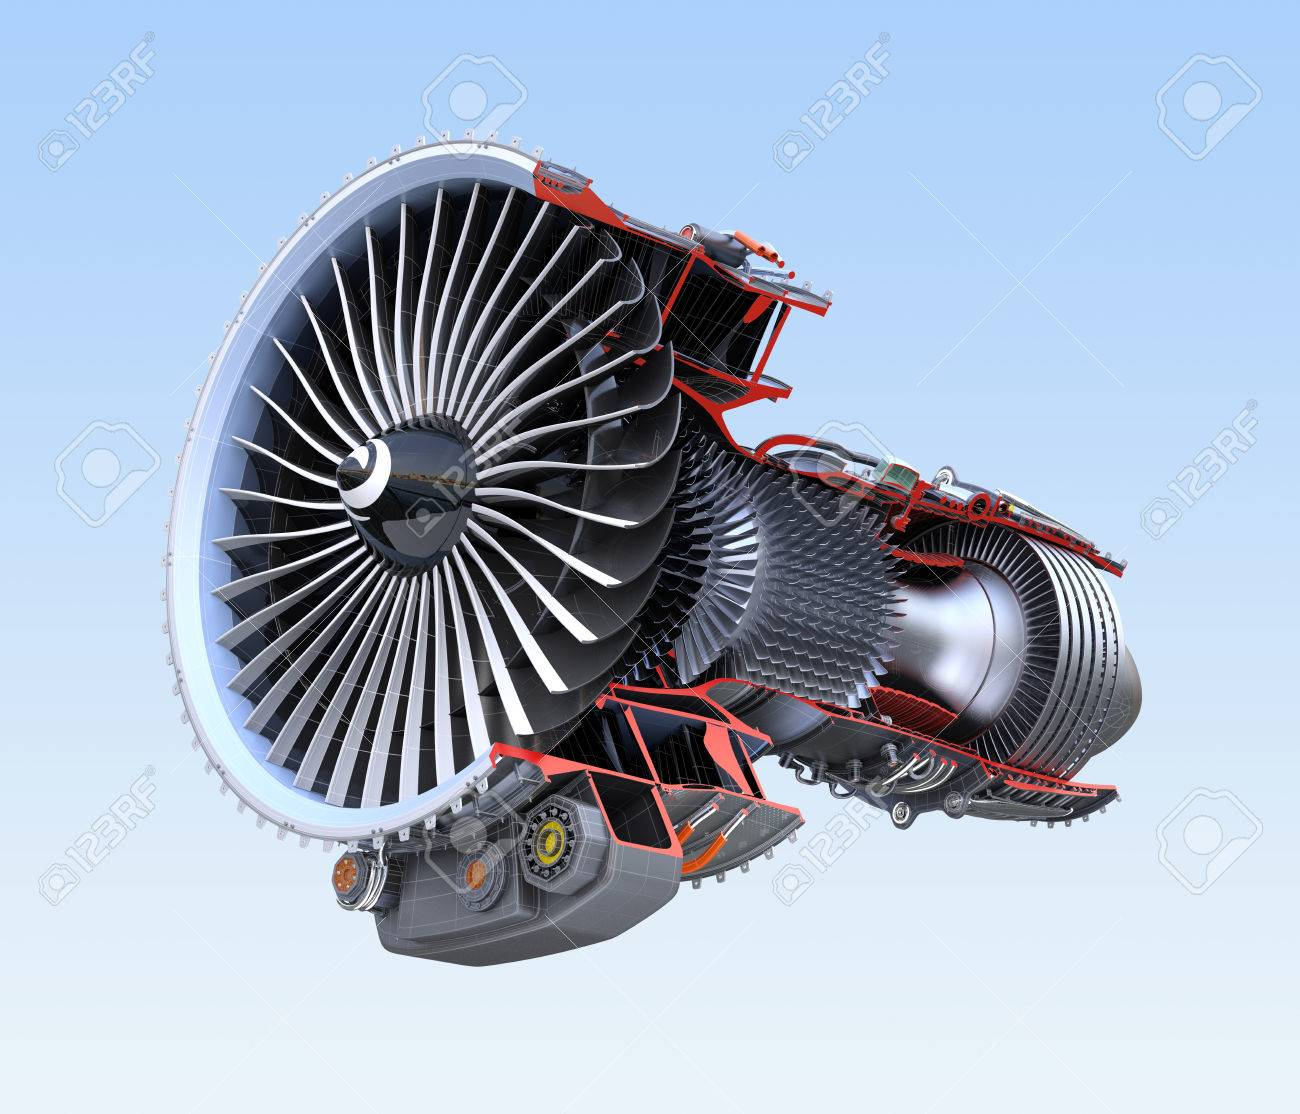 Turbofan jet engine's cross section wireframe isolated on blue